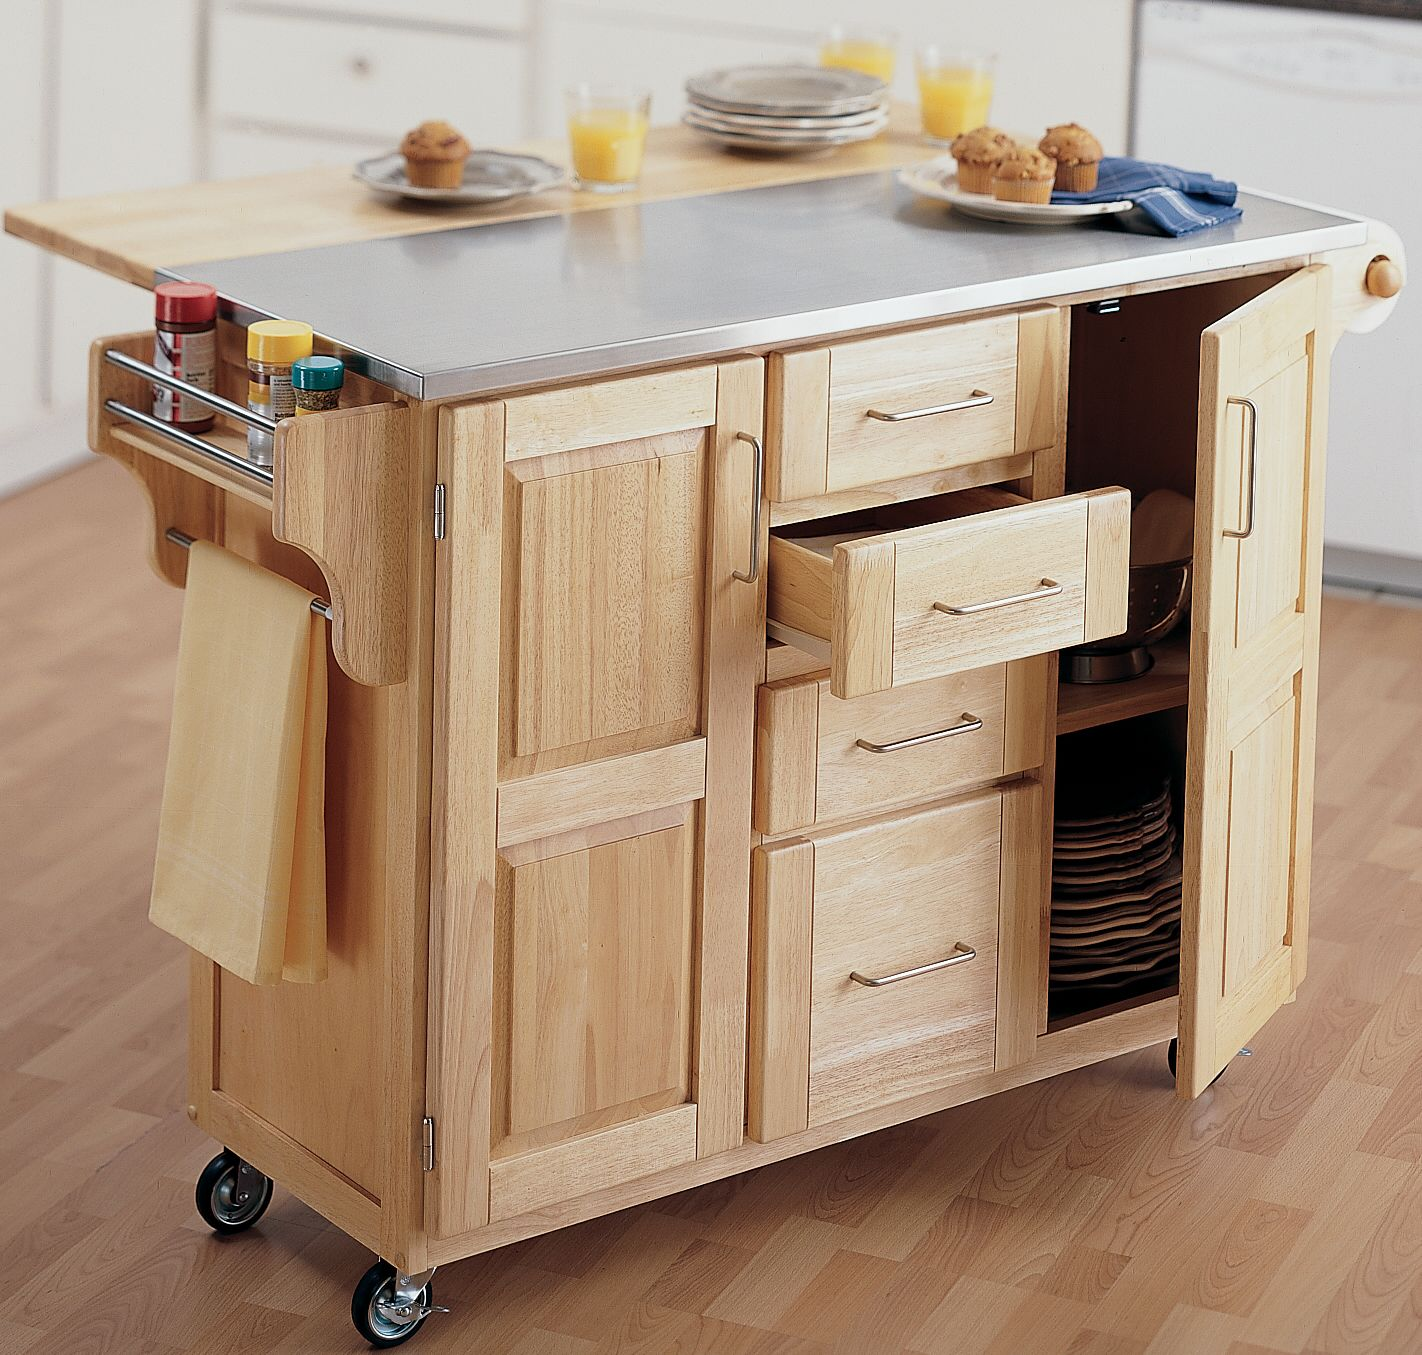 Awesome Oak Rolling Kitchen Island with Cloth Handle and Small Drawers under Grey Top